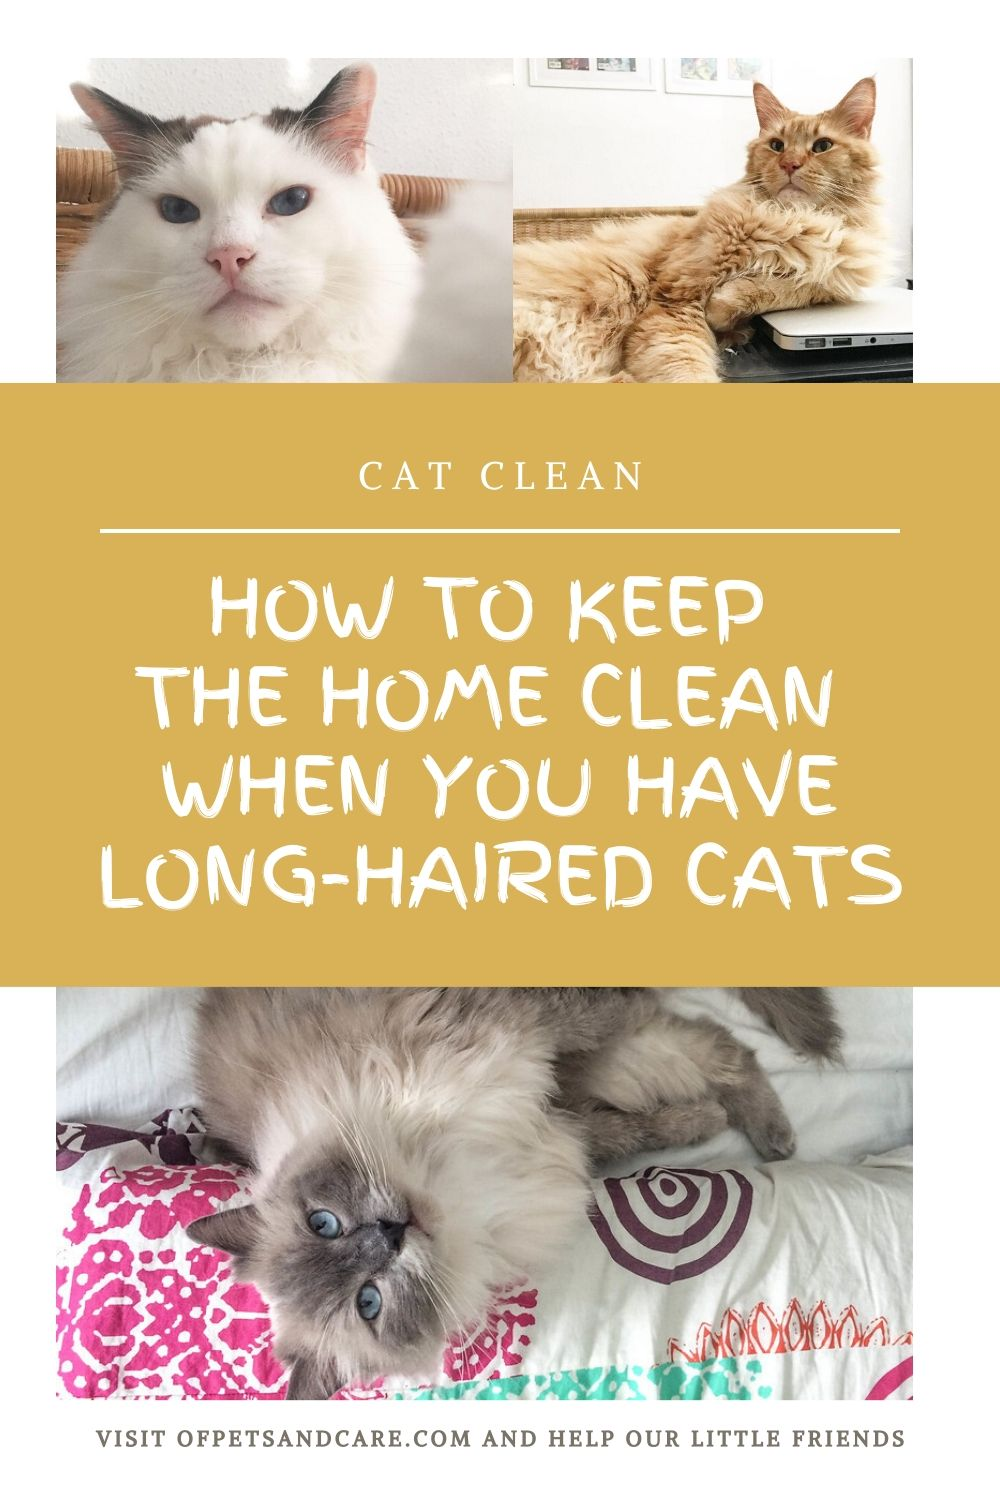 Having cats at home is relaxing and fun...but, it can also be tiresome. That is when you have long-haired cats shedding their fur all day long. As a pet owner and homemaker, one has to see to it that the cats are happy and the home is well-maintained.